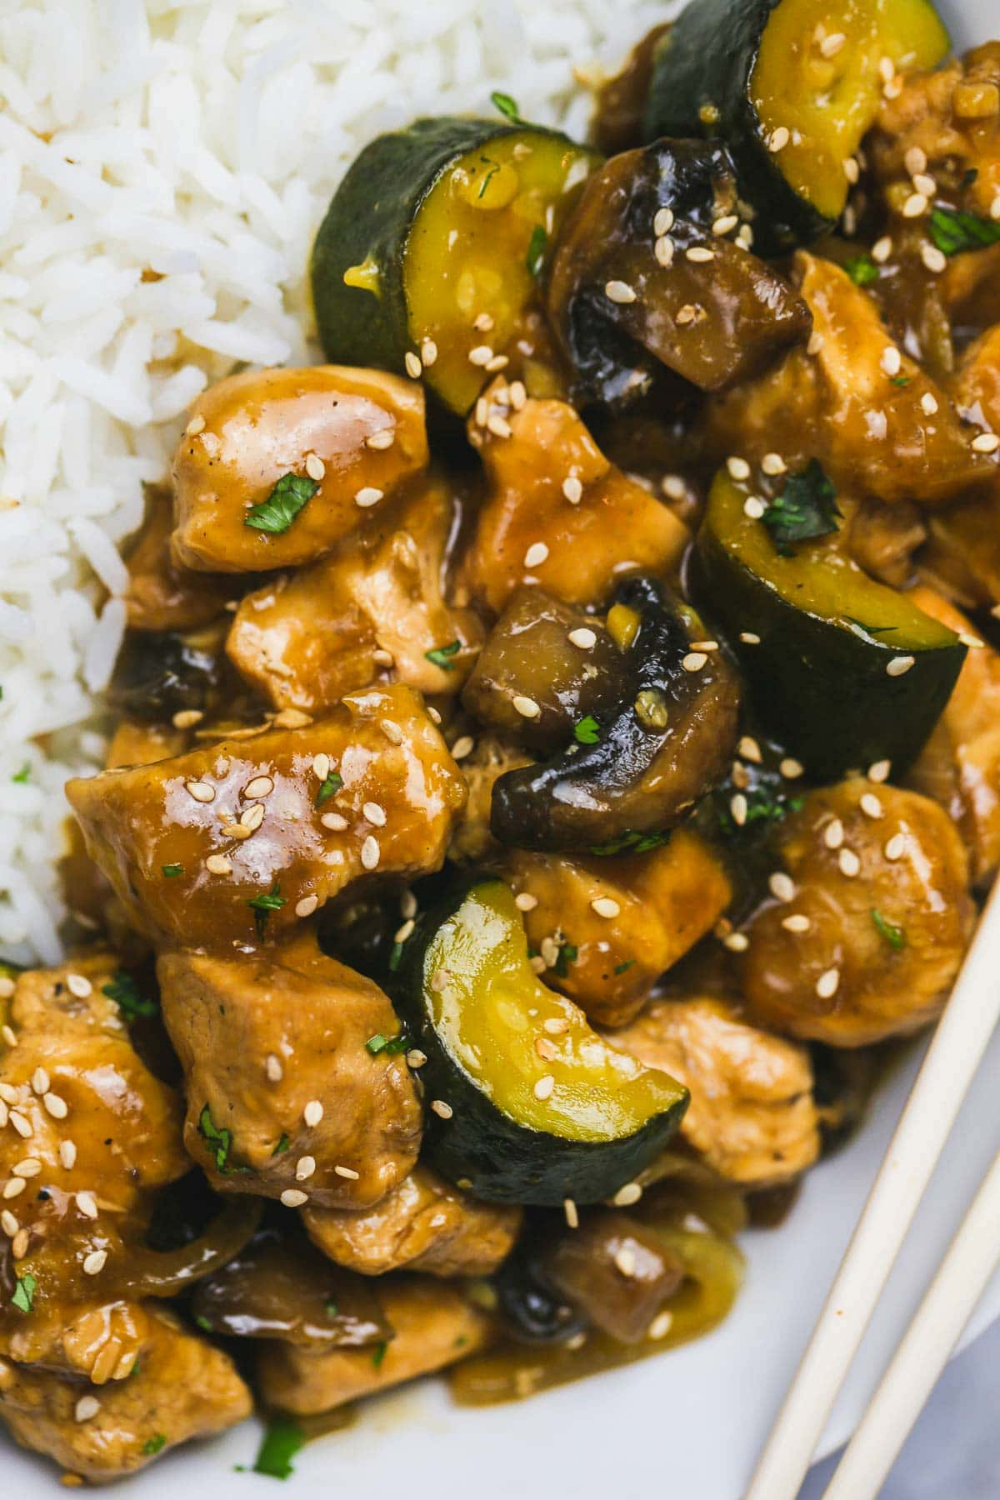 Pin By Julie Gettle On Instant Pot Recipes In 2020 Hibachi Chicken Instant Pot Recipes